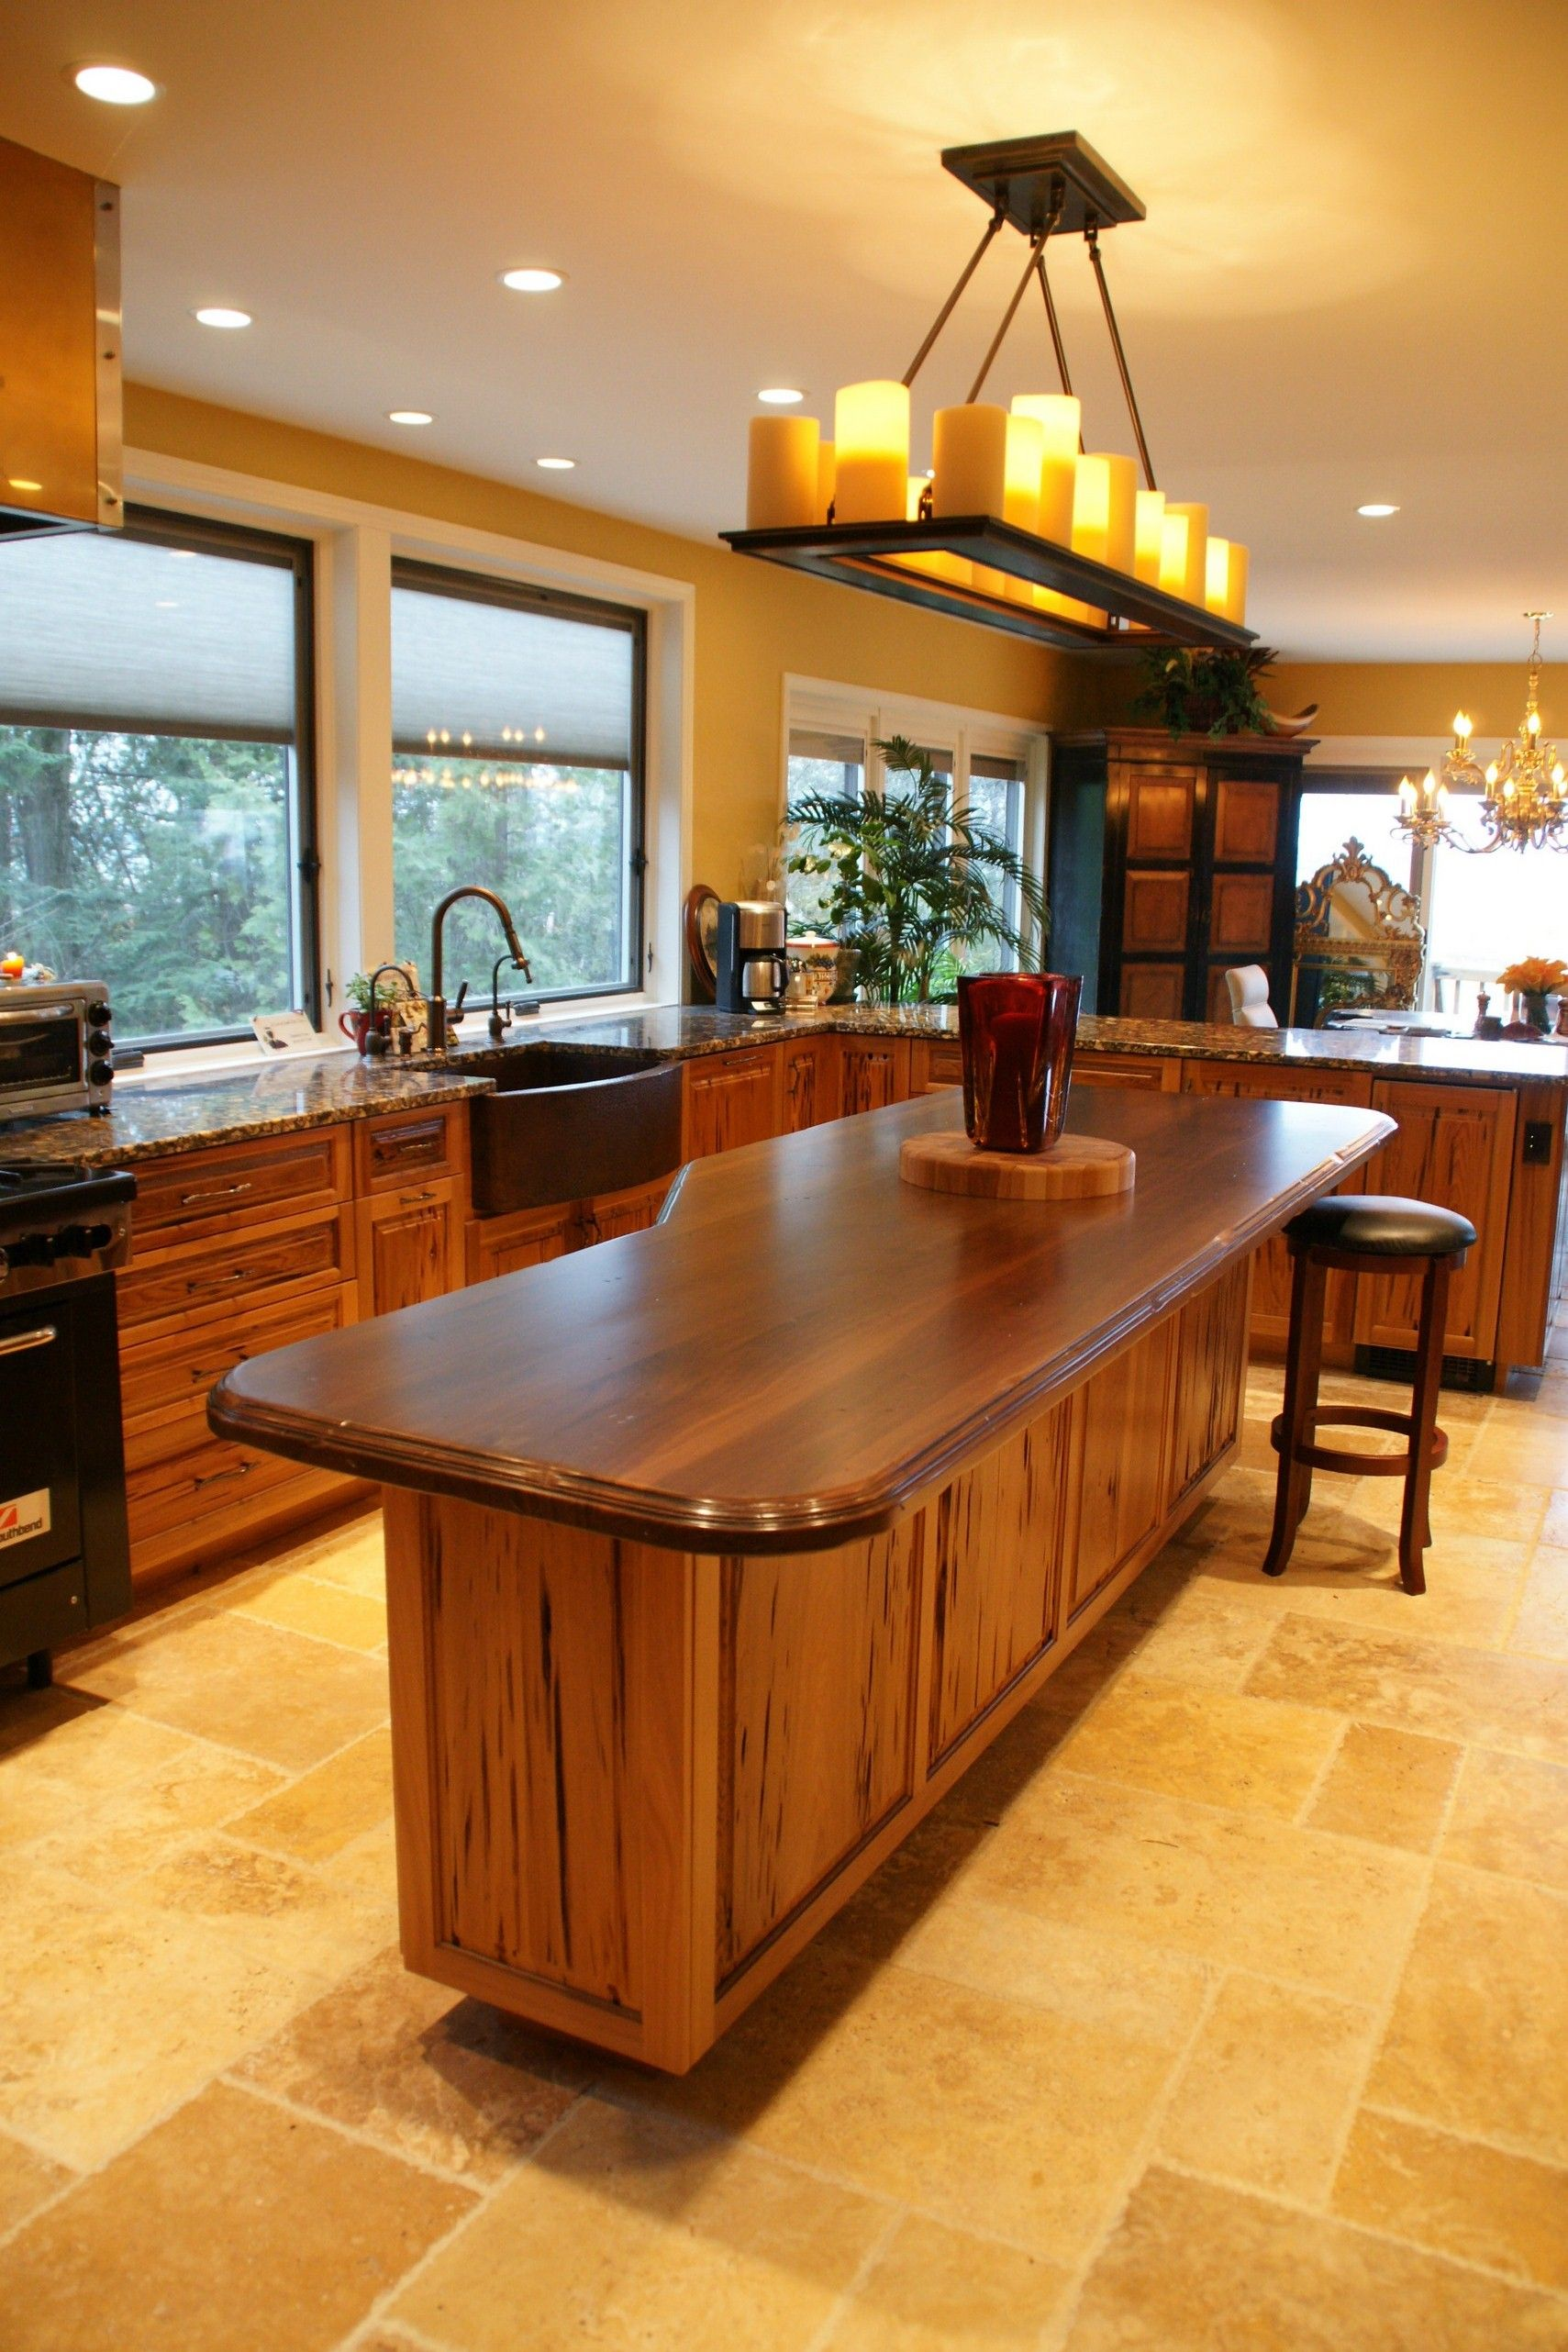 Pecky Cypress Gallery Less Than 10 Of Cypress Trees Will Have This Pecky Characteristic This One Of A Kind C Pecky Cypress Kitchen Remodel Kitchen Cabinetry